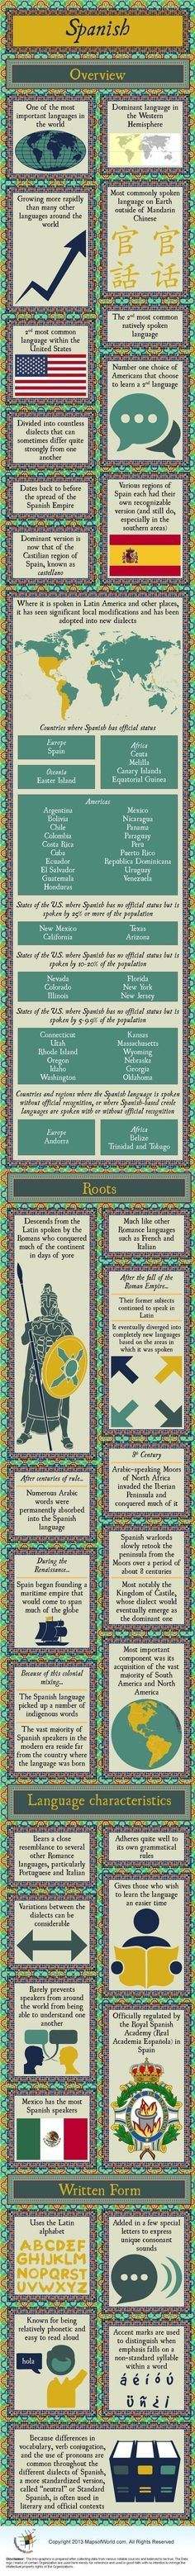 Nice blogpost about Spanish Language – Facts Learn Spanish in Spain, programs for children, teenagers and adults: www.spanish-schoo...http://www.mapsofworld.com/pages/tongues-of-world/infographic/infographic-of-spanish/ #spanishfacts #spanishinfographic